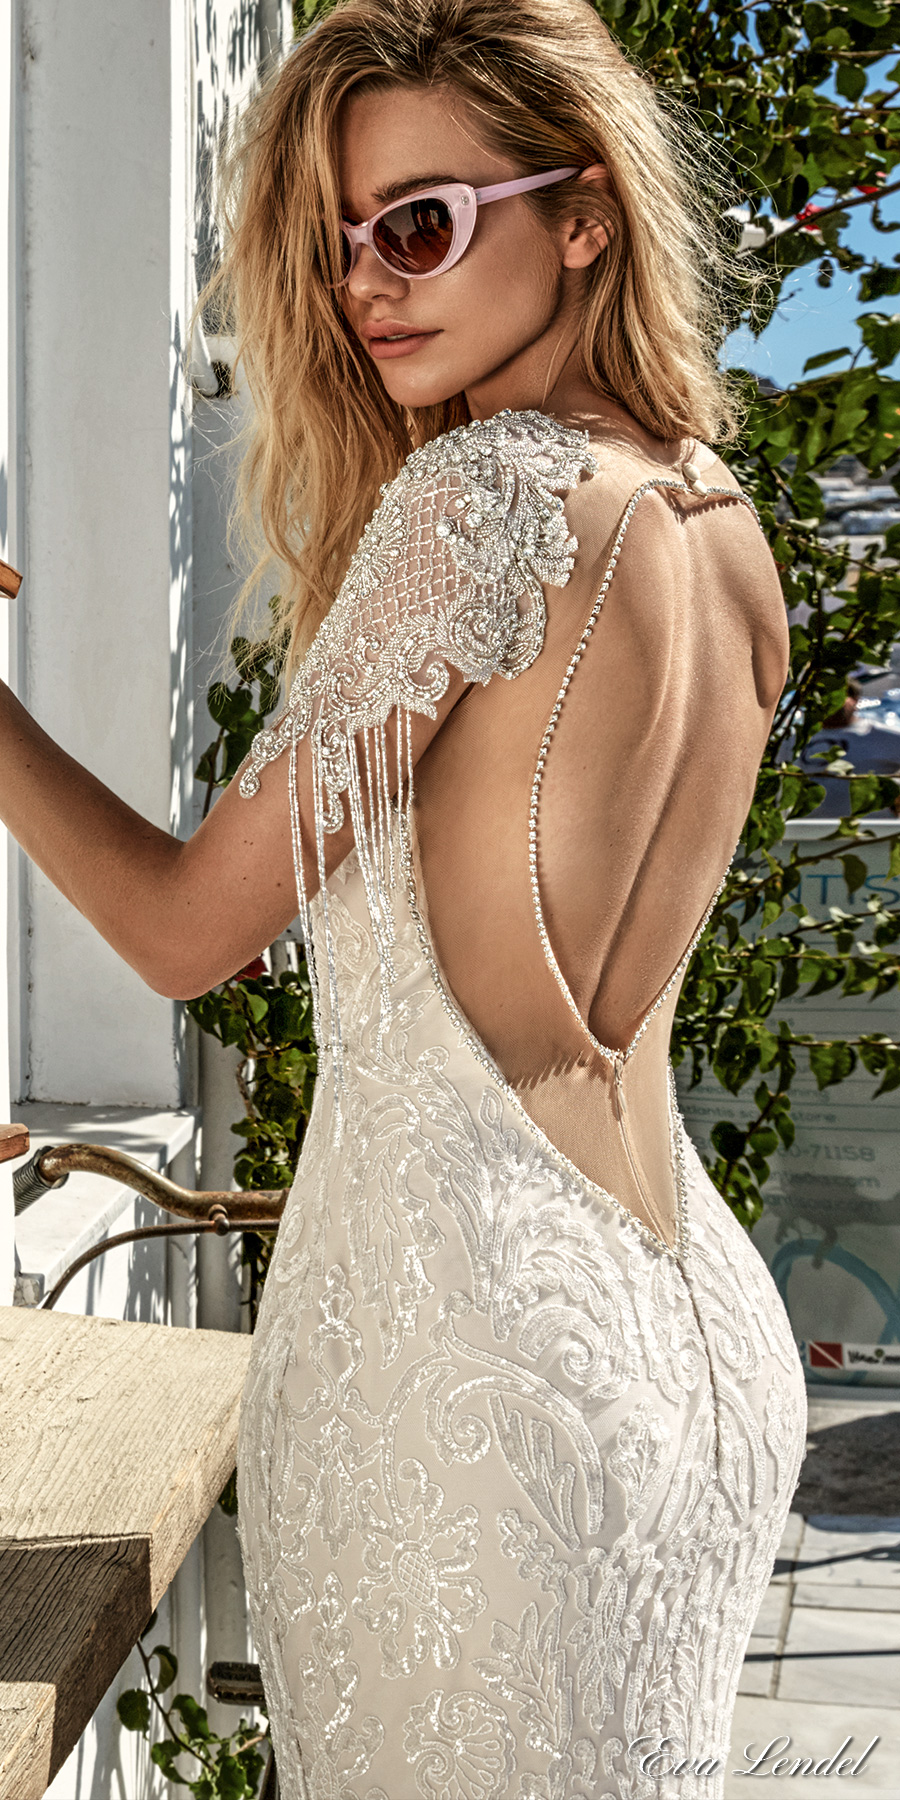 eva-lendel-2017-bridal-cape-sleeves-deep-plunging-sweetheart-necklin-full-embellishment-elegant-sexy-glamorous-fit-and-flare-sheath-wedding-dress-keyhole-back-royal-train-bler-zbv